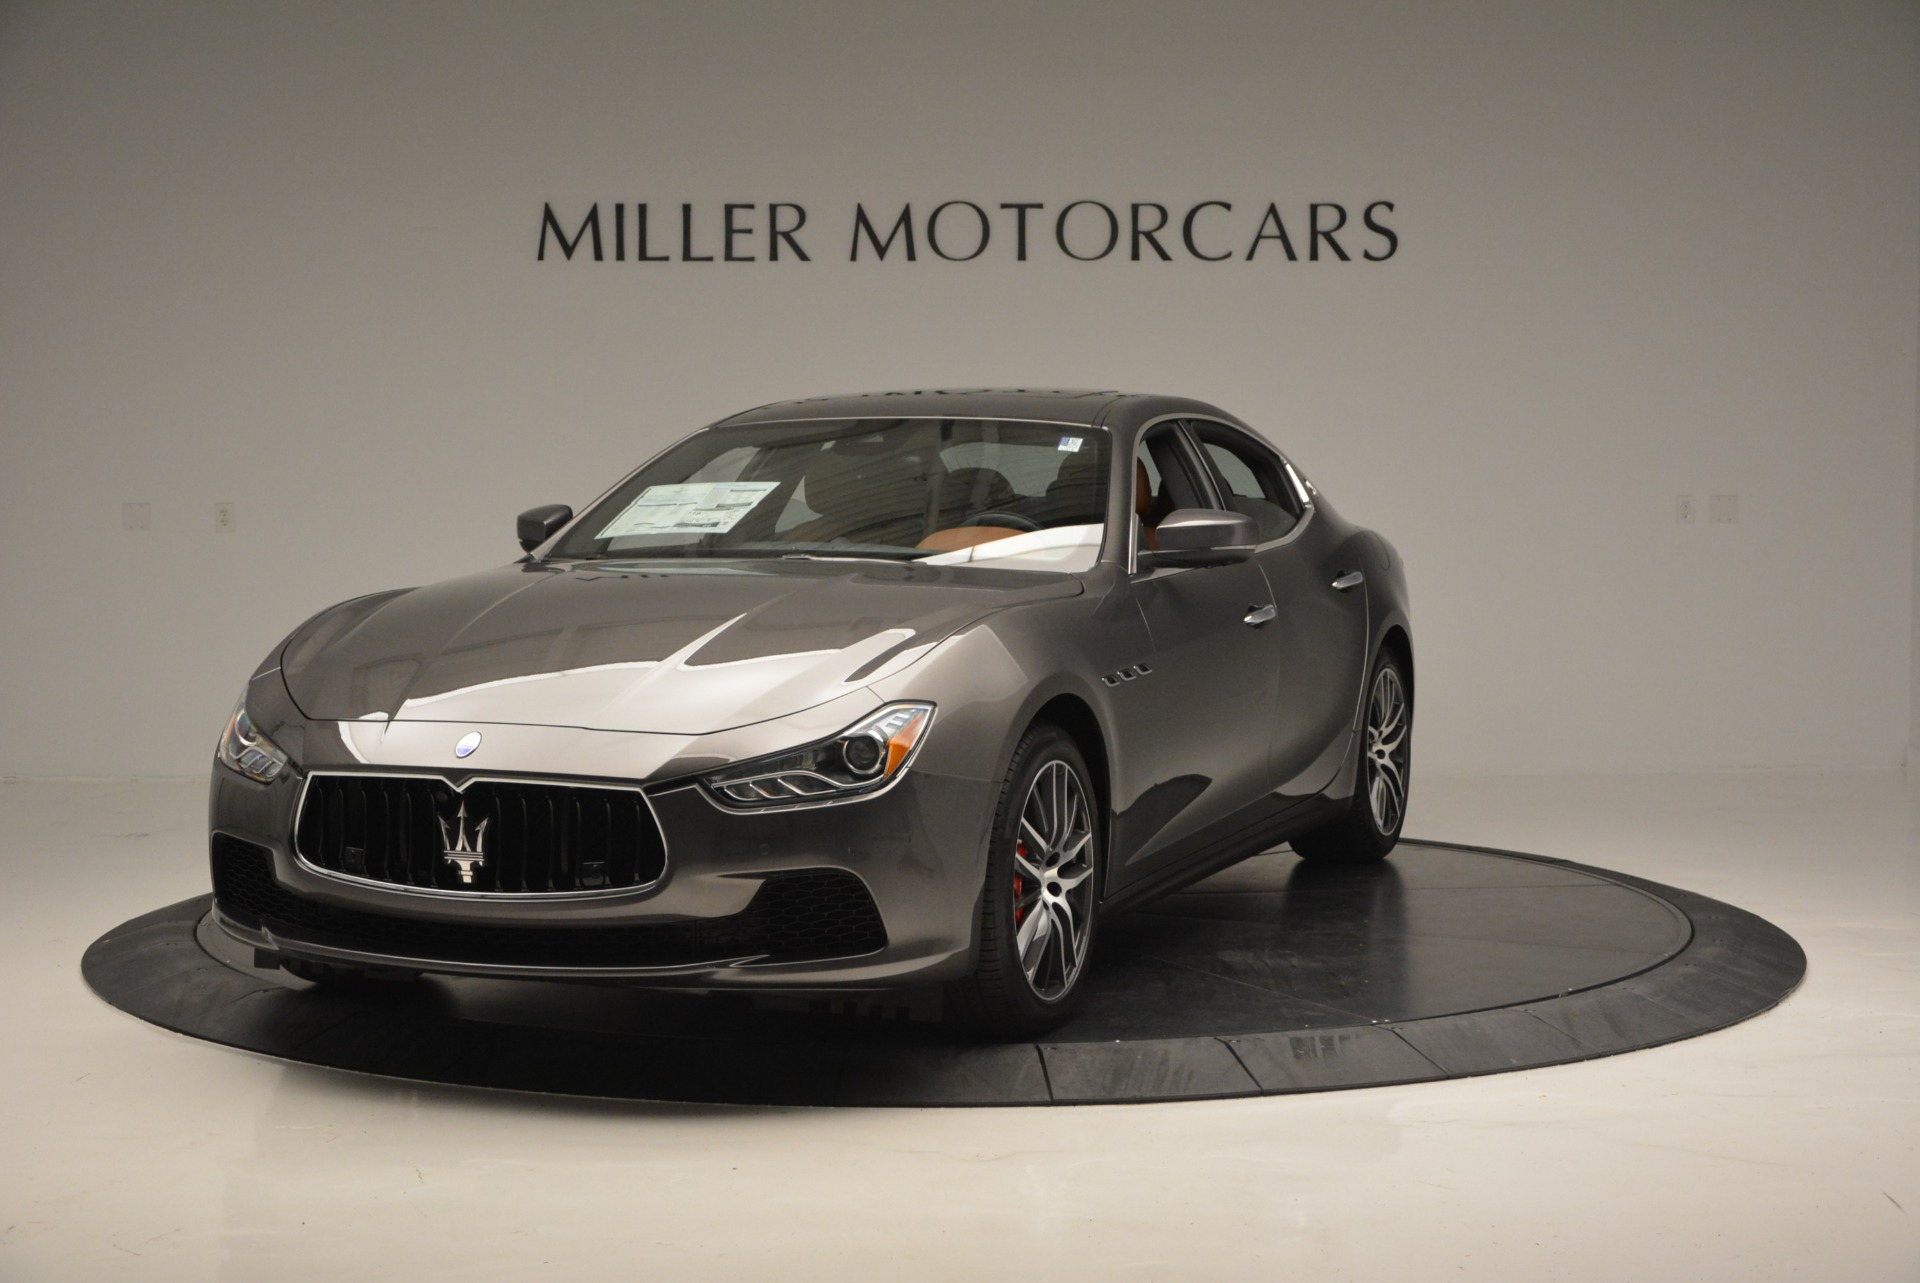 Used 2018 Maserati Ghibli S Q4 for sale Sold at McLaren Greenwich in Greenwich CT 06830 1